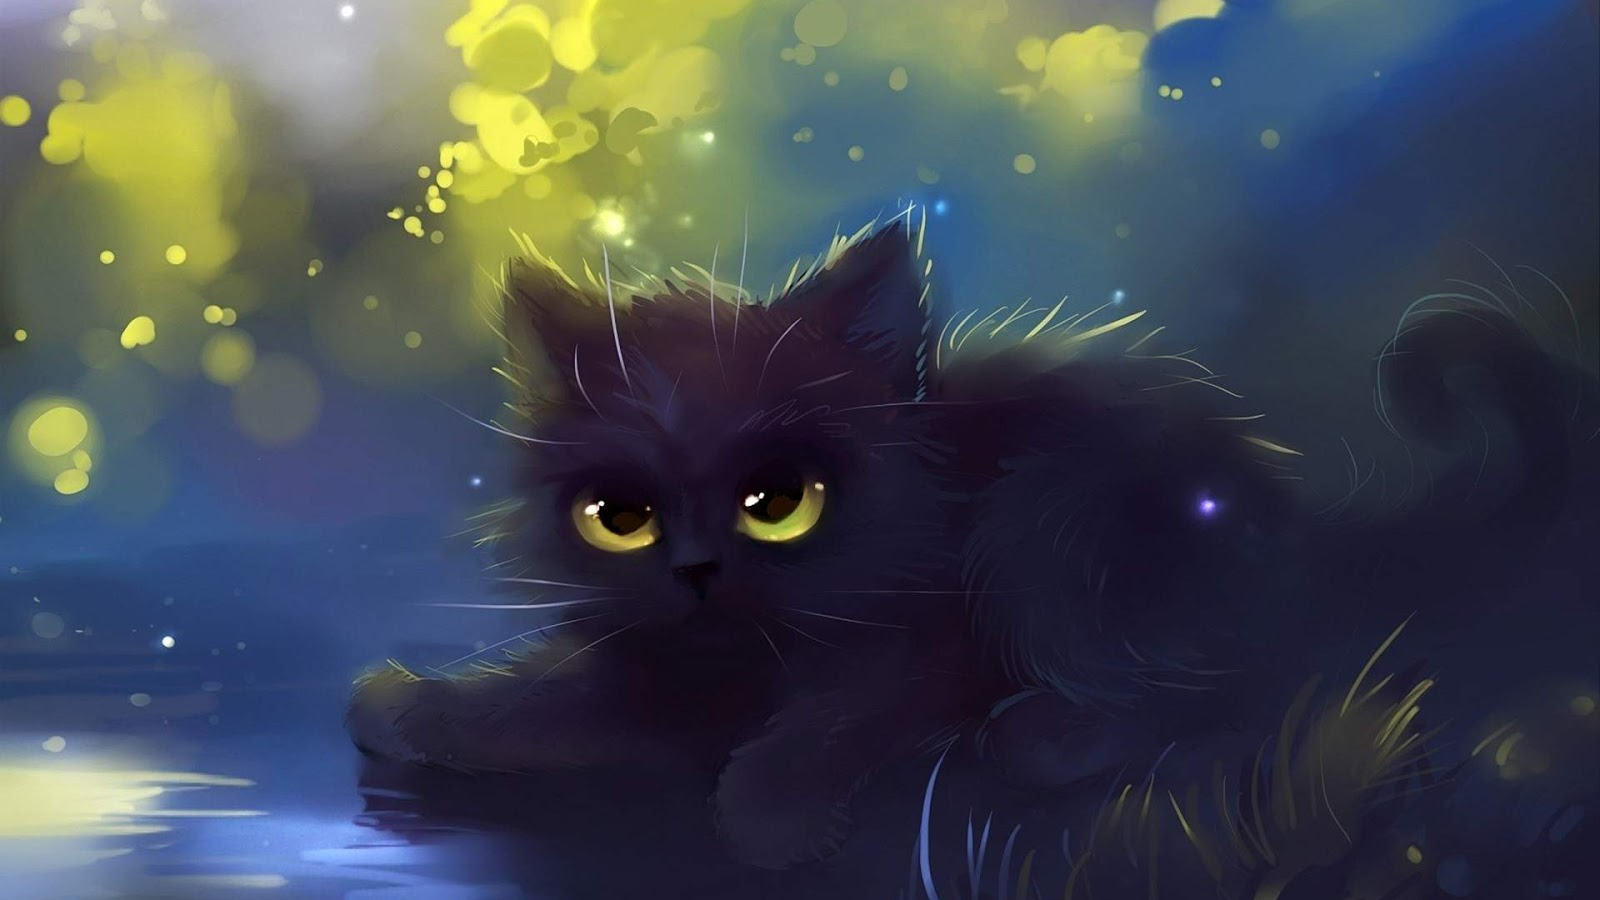 Cat Wallpaper 1920x1080 High Quality Desktop Iphone And Android